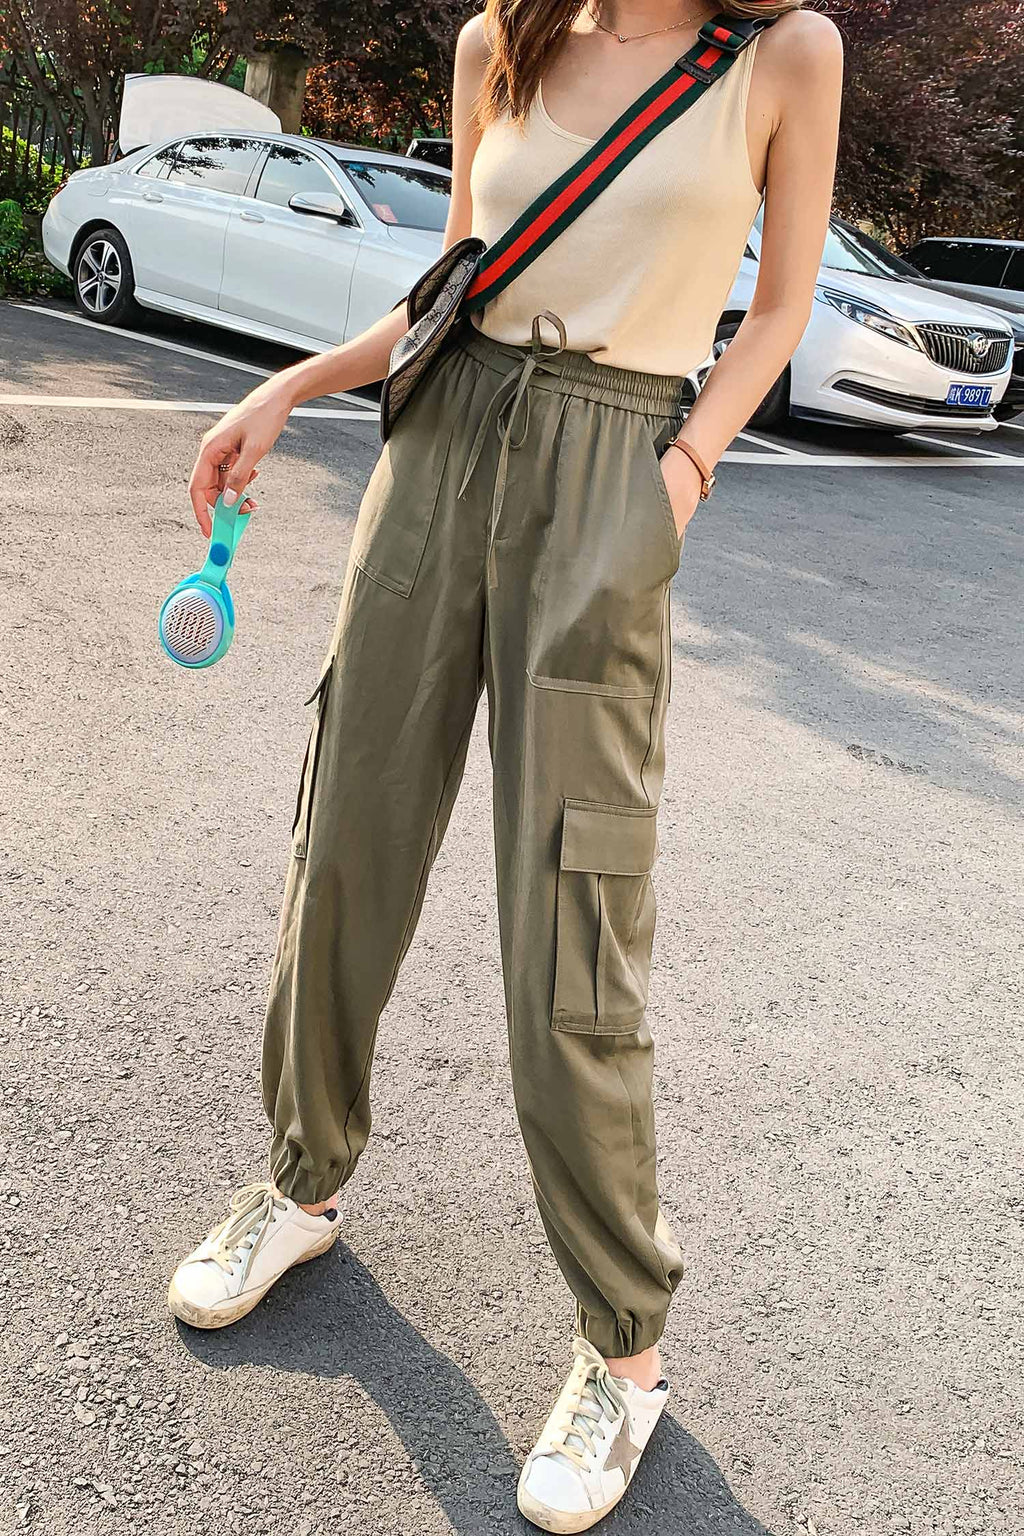 Webbing Belt Patch Pocket Pant - 7GEGE